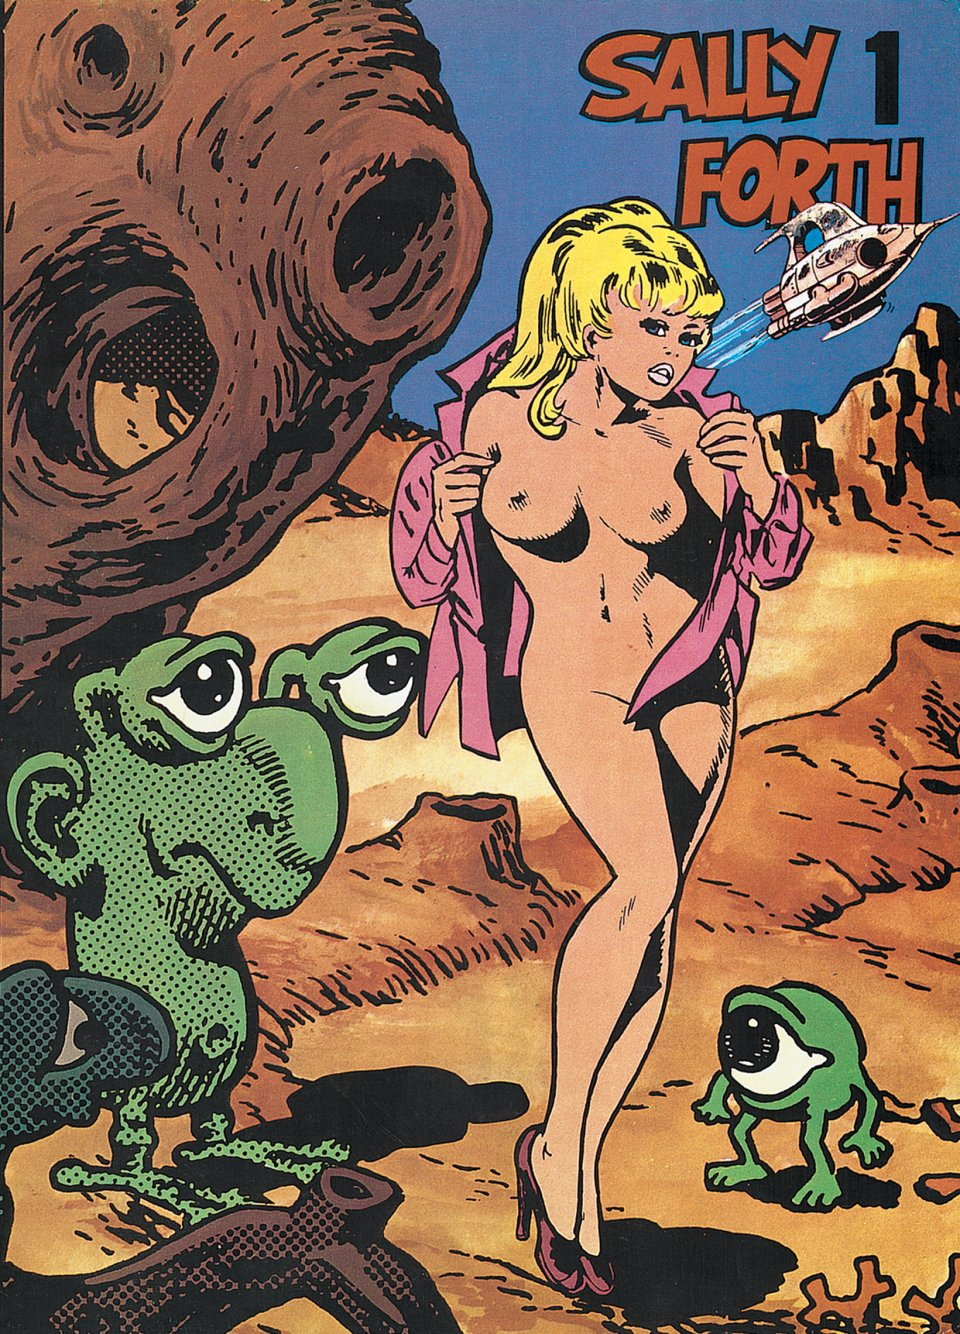 The very first TASCHEN COMICS publication, Sally Forth.